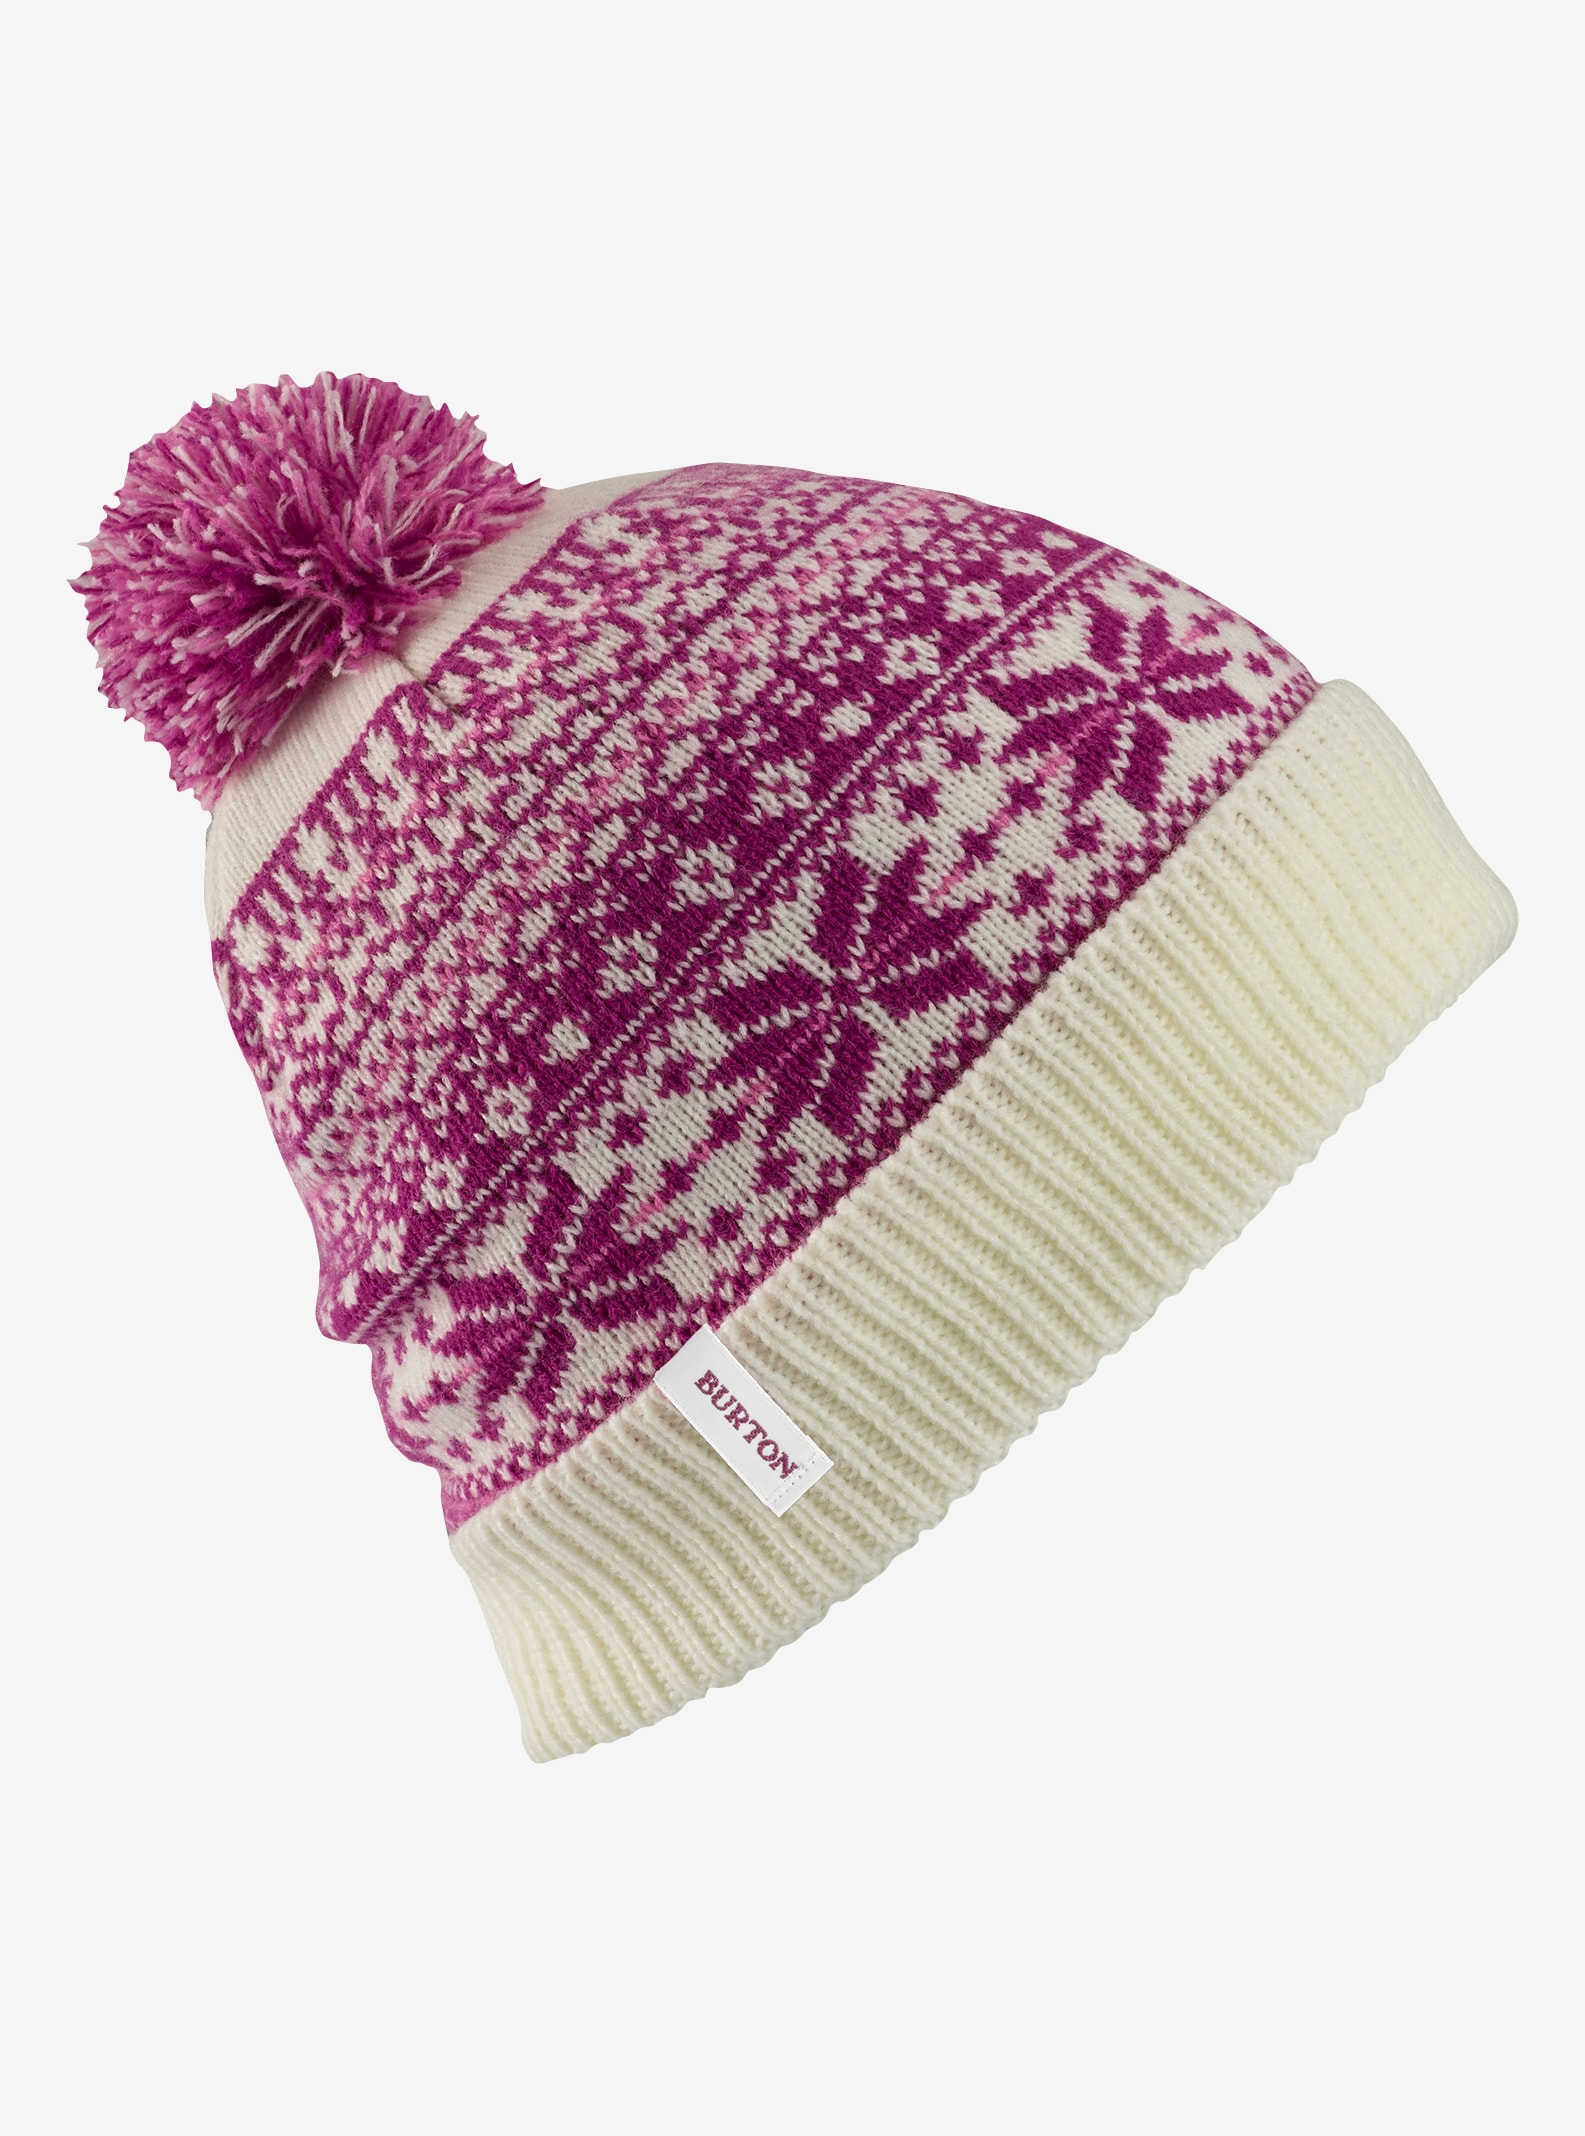 Girls' Burton McKennzie Beanie shown in Stout White